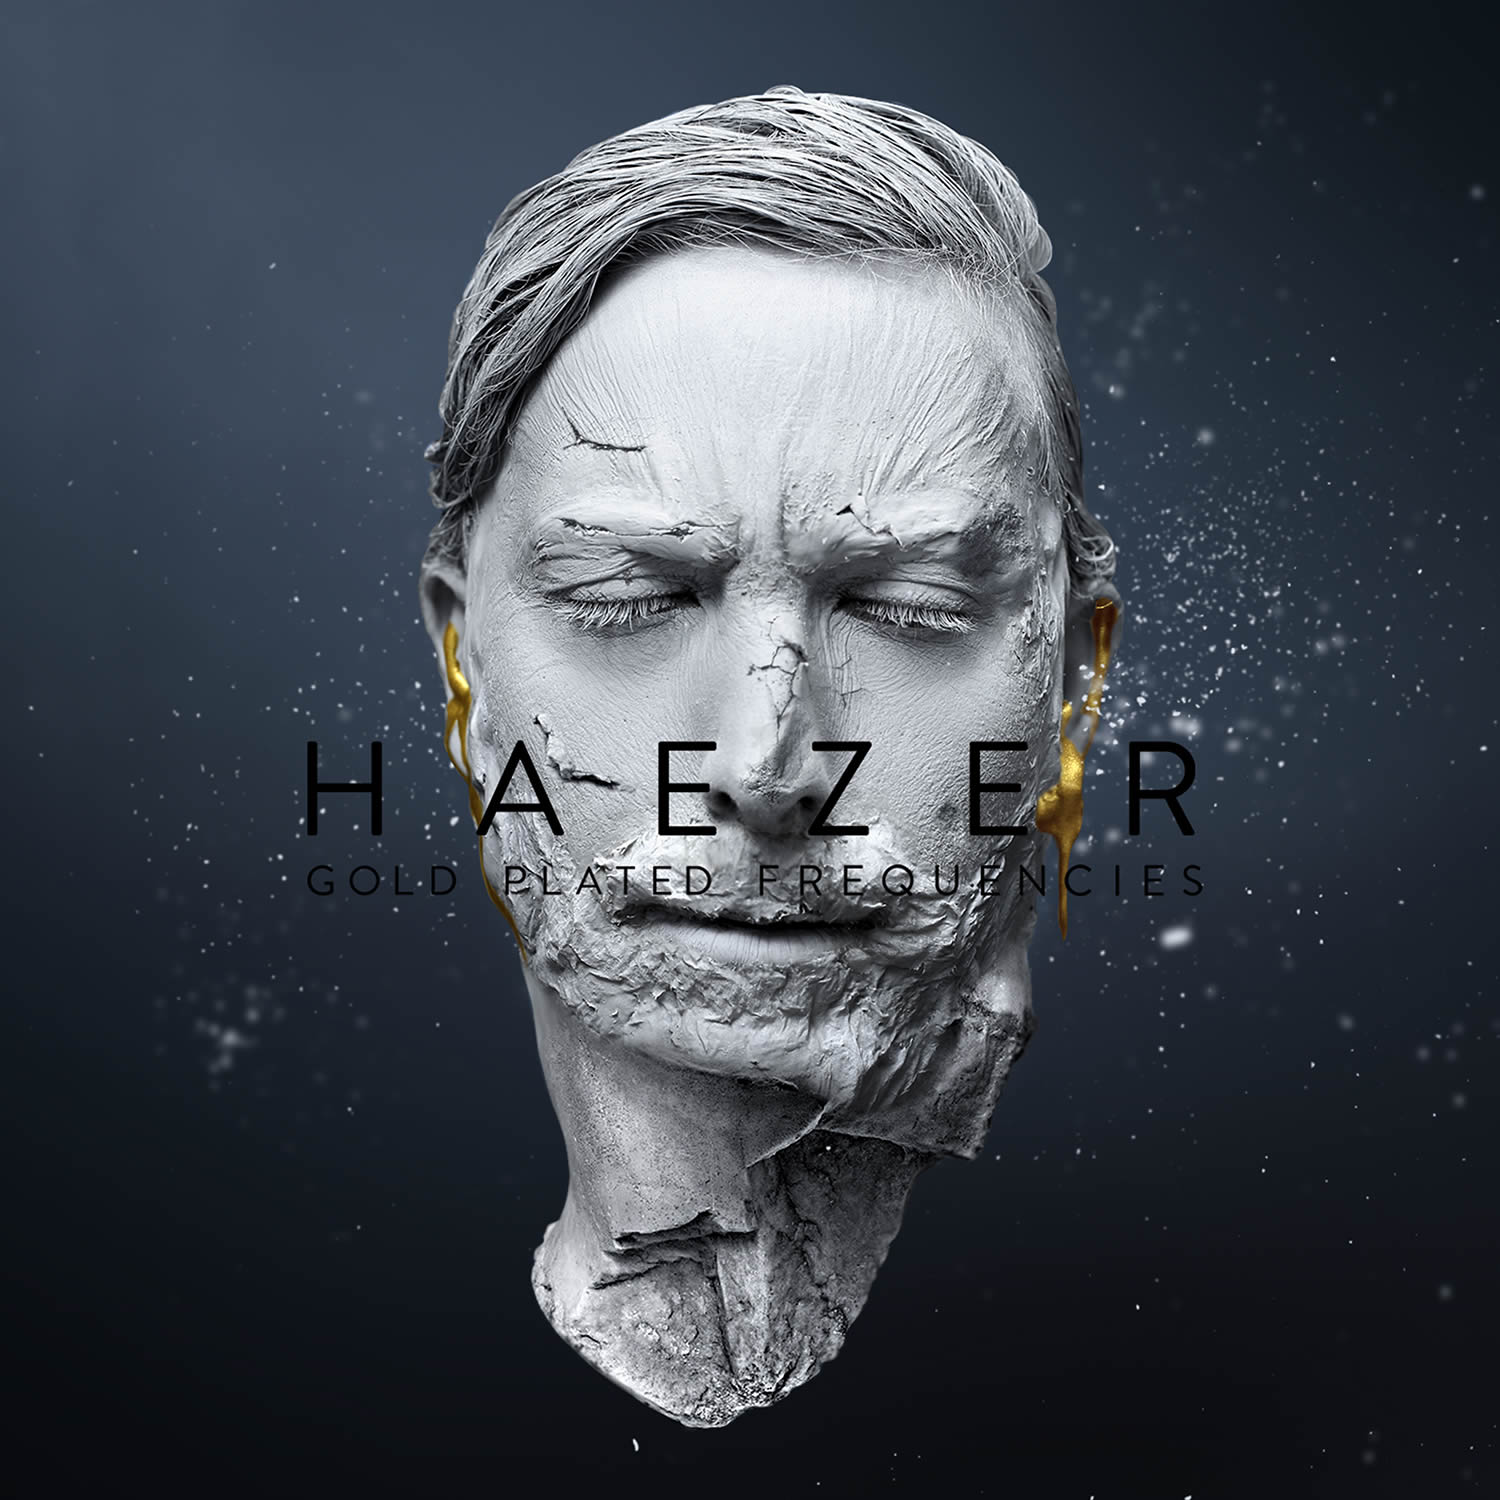 Haezer - Gold Plated Frequencies Album Art by Chris Slabber